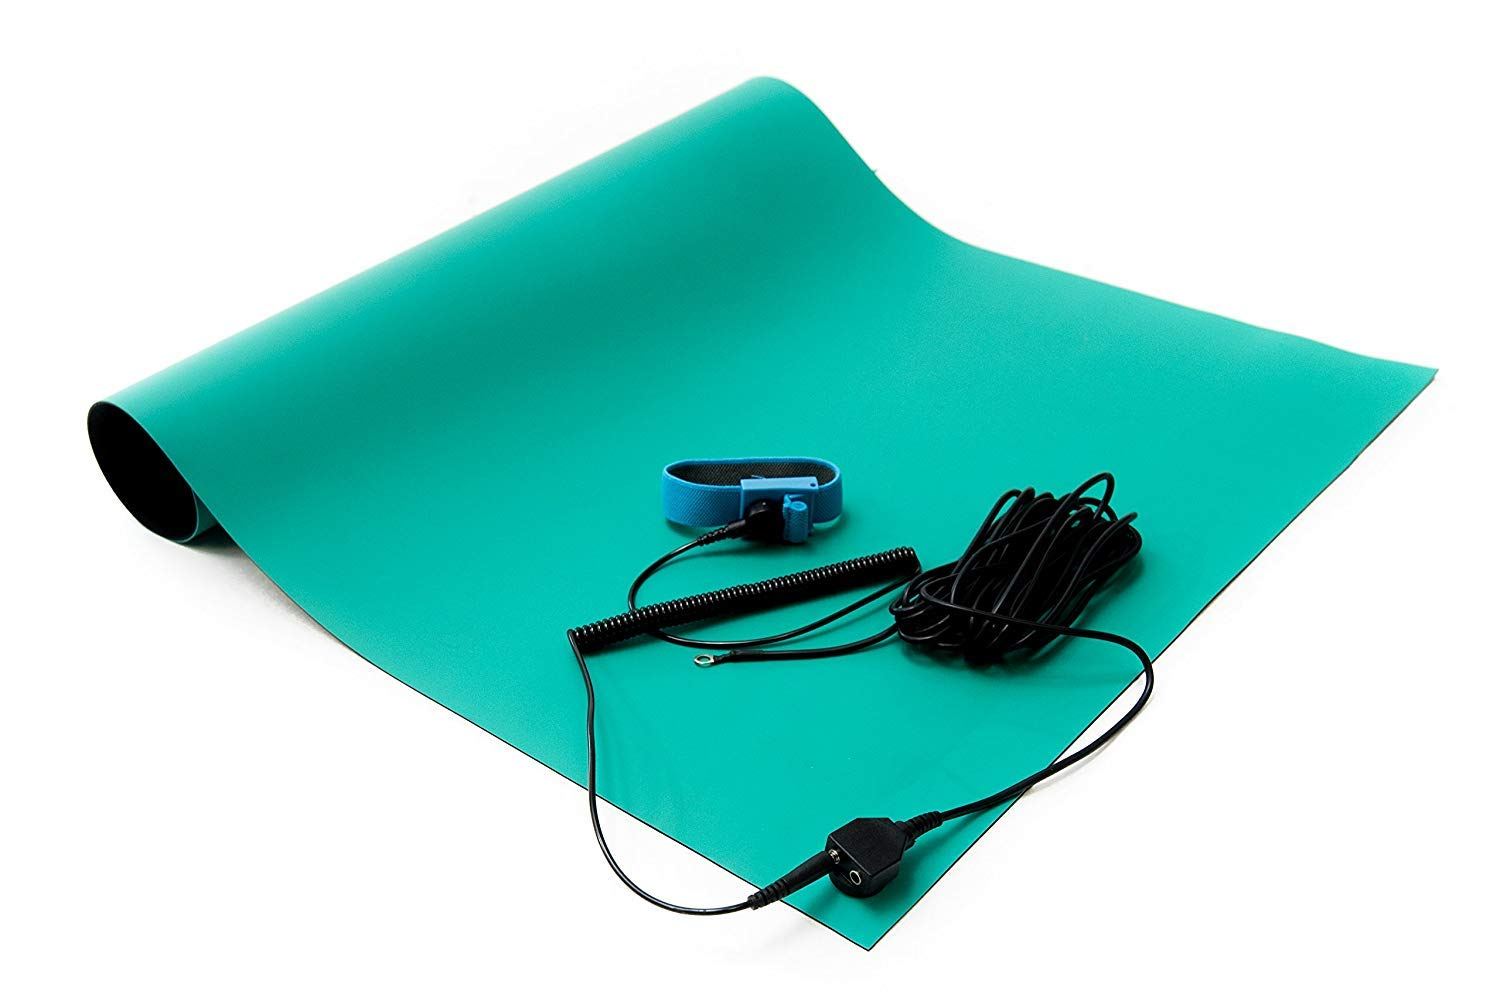 Bertech Rubber ESD Soldering Mat Kit with a Wrist Strap and Grounding Cord, 20'' Wide x 36'' Long, Green